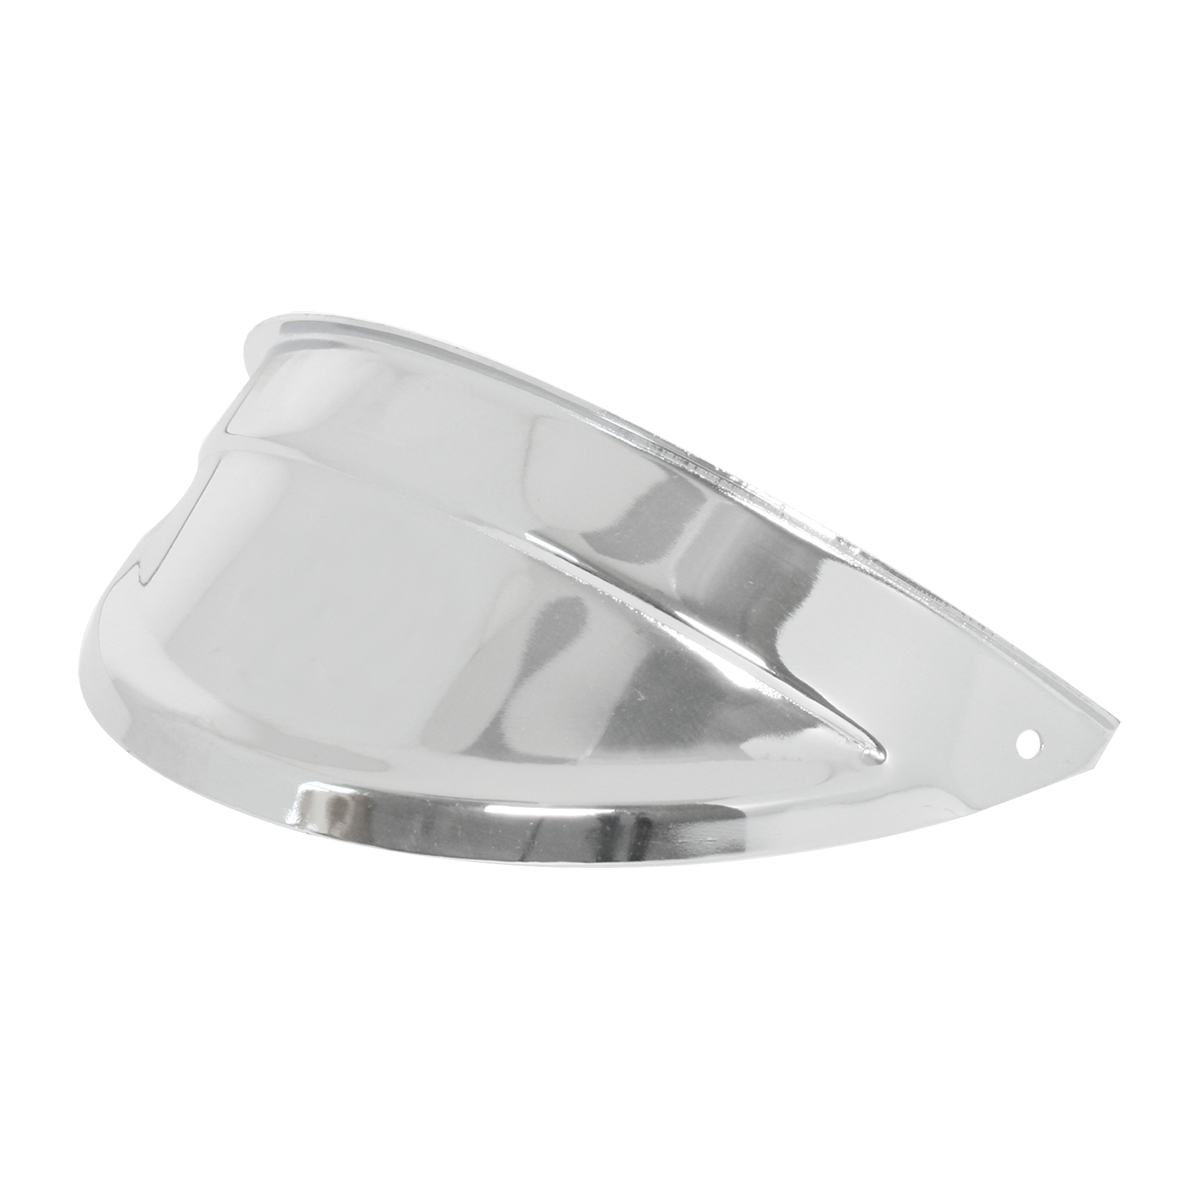 #92470/#70568 Chrome Plated Steel Headlight Visors w/o Hole in Center